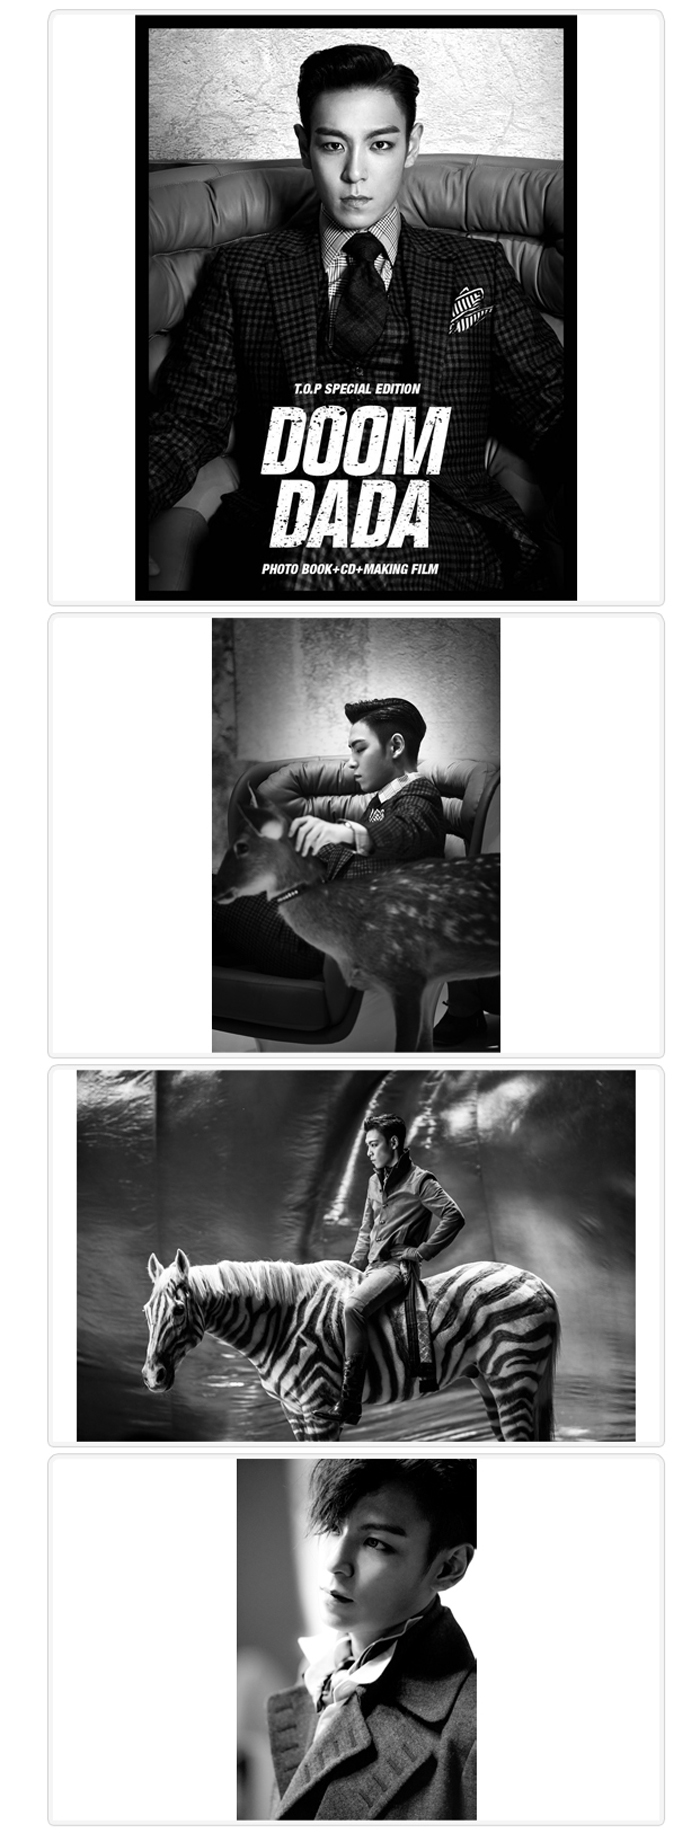 [ K-POP ] Big Bang : T.O.P - Special Edition (DOOM DADA) (+Photobook )